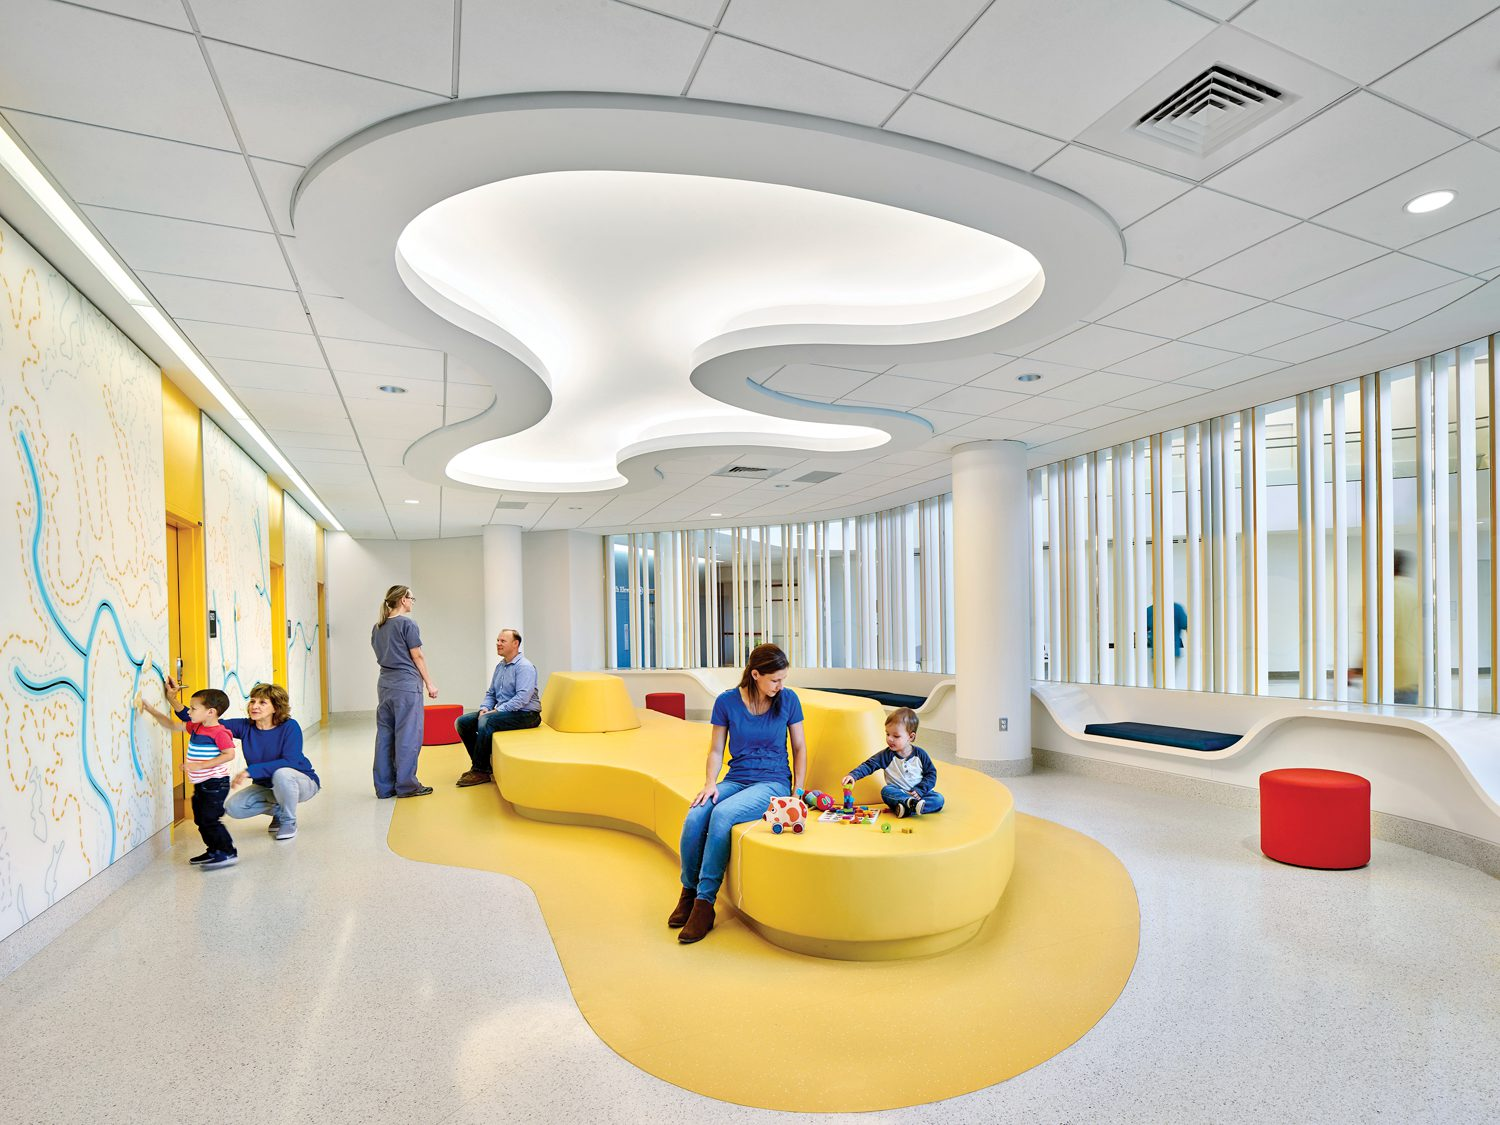 Yellow curved couch beneath a similarly shaped illuminated pattern on the ceiling above in University of Virginia hospital expansion, Charlottesville, by Perkins&Will.